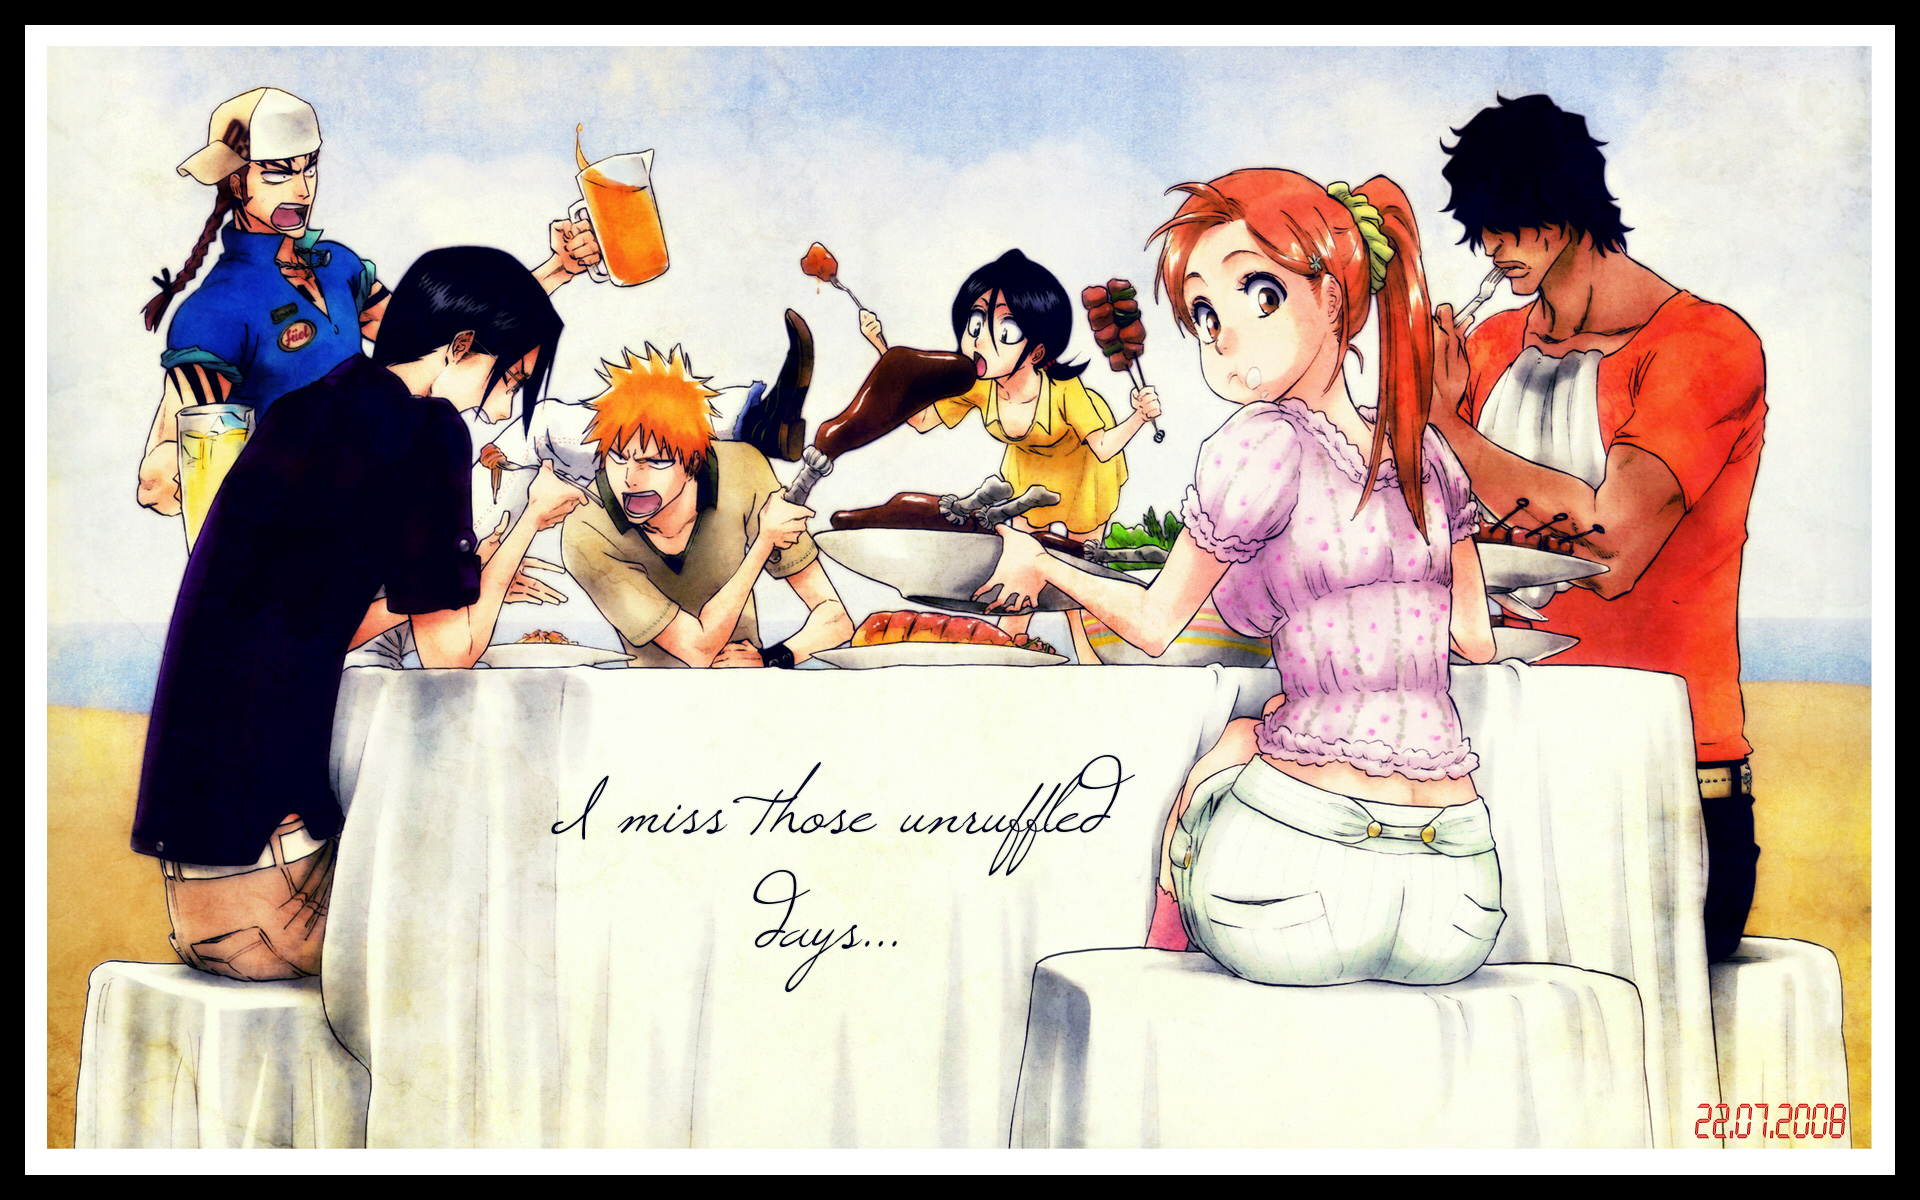 abarai_renji black_eyes black_hair bleach braids brown_eyes brown_hair food glasses group hat inoue_orihime ishida_uryuu kubo_tite kuchiki_rukia kurosaki_ichigo long_hair male orange_hair ponytail red_hair ribbons short_hair shorts yasutora_sado